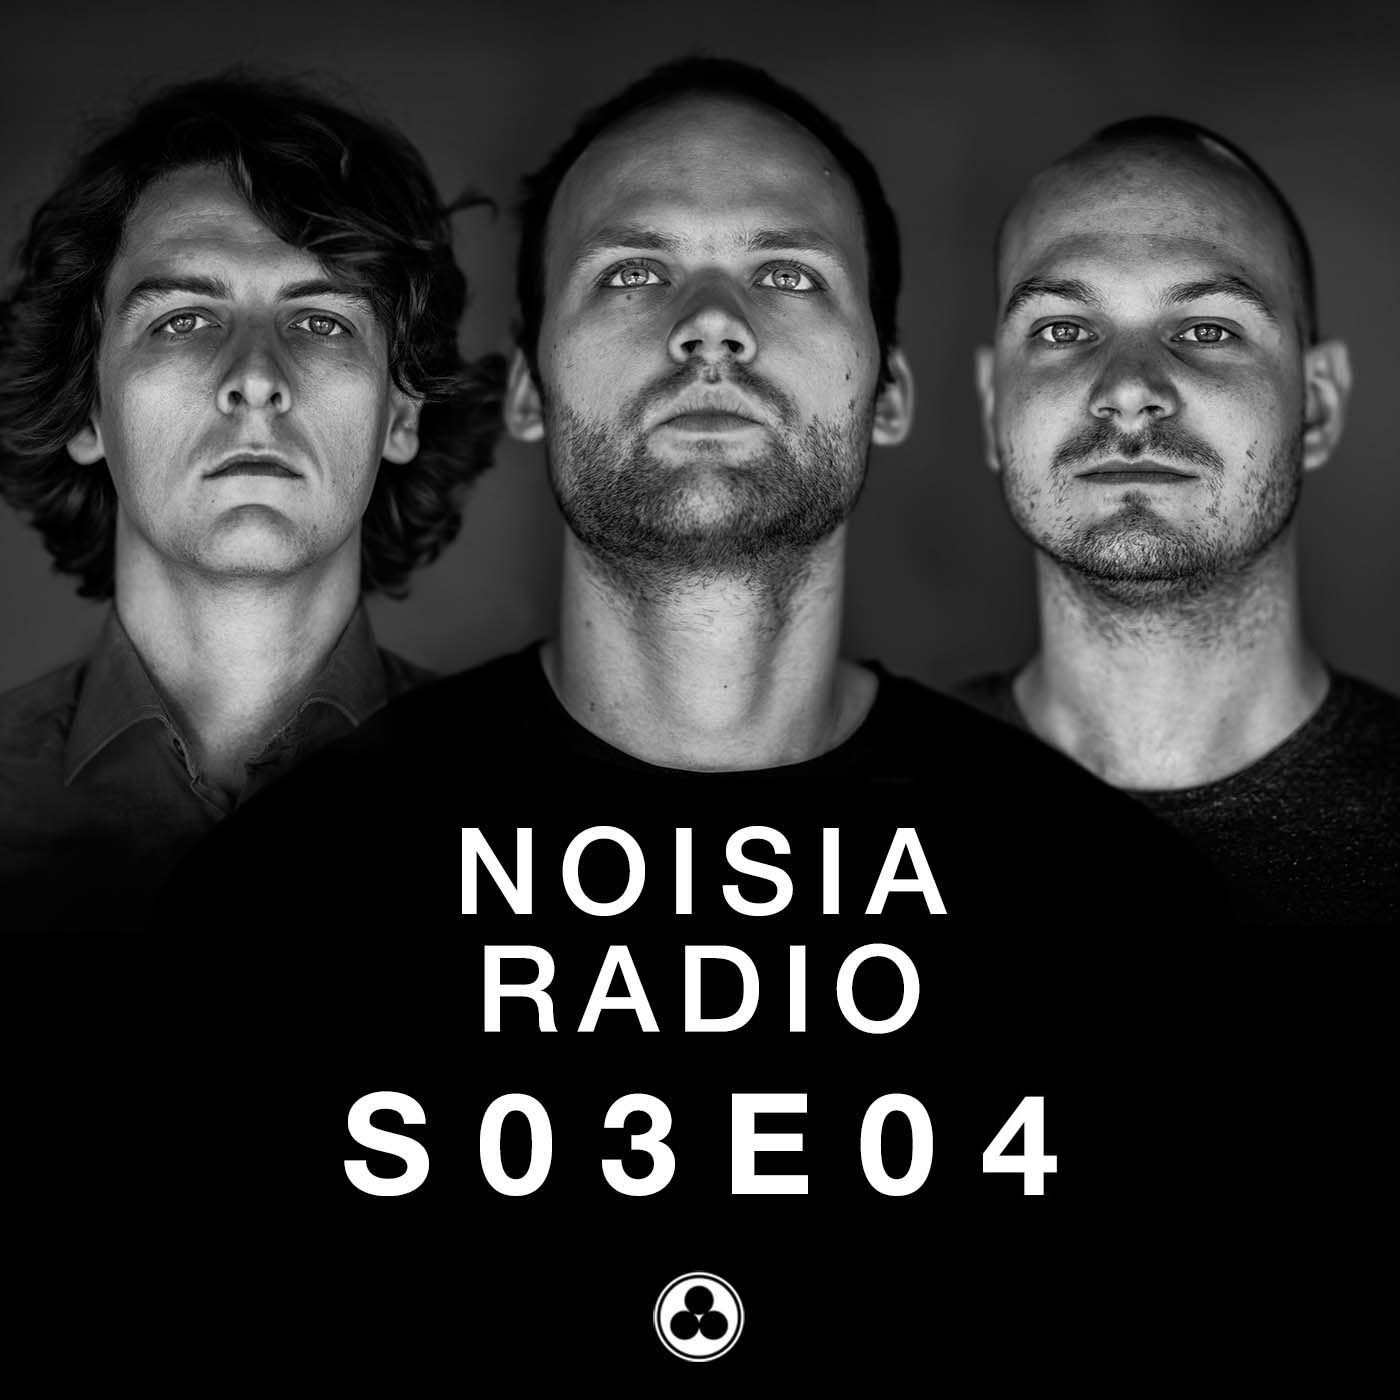 Noisia Radio S03E04